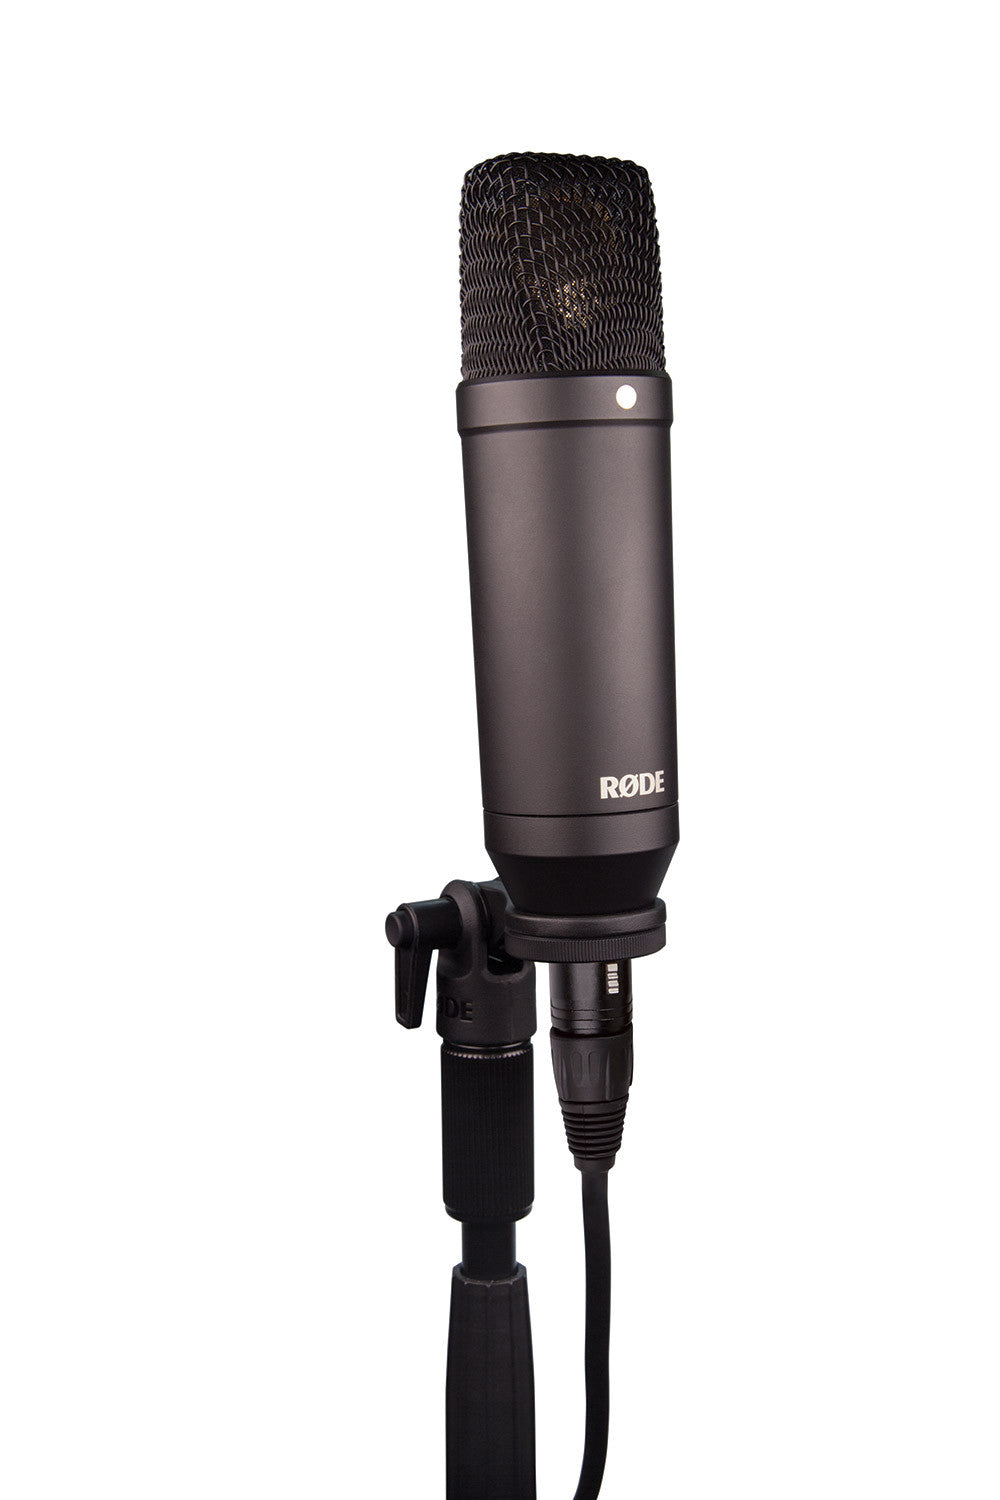 RODE NT1 Condenser Microphone Cardioid - Audio - RØDE - Helix Camera